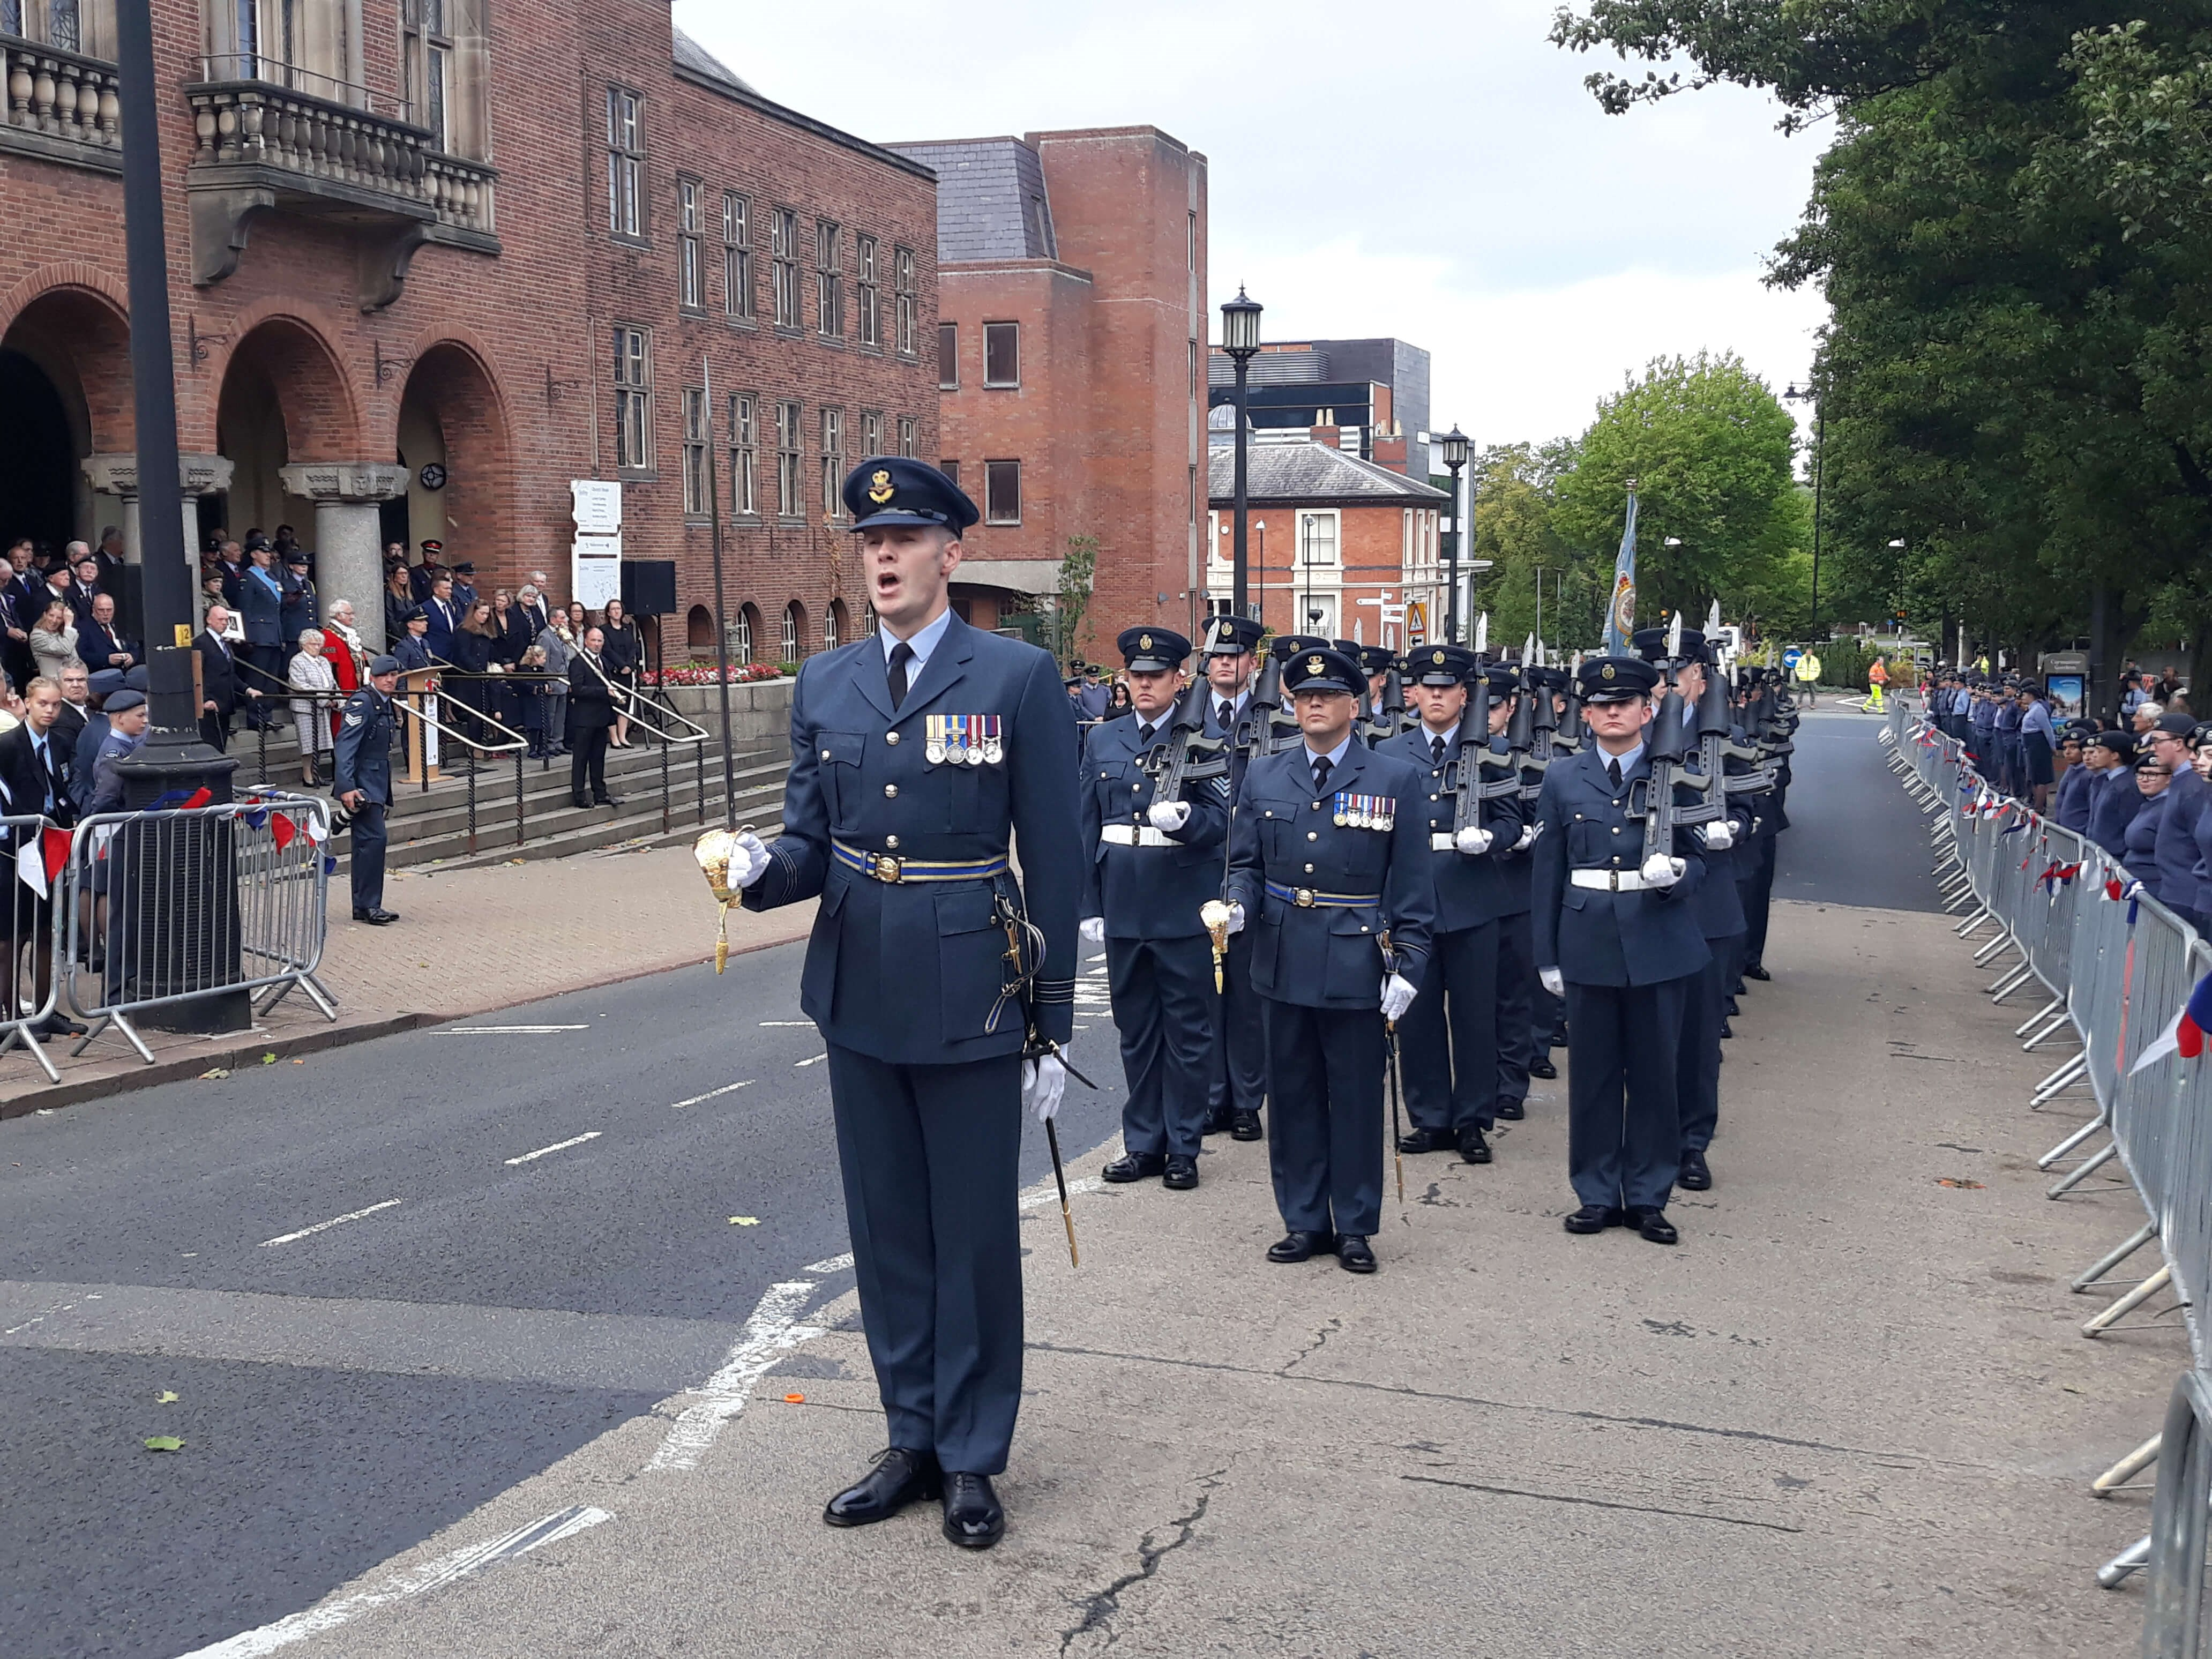 RAF Cosford receives Freedom of Dudley Borough at special ceremony